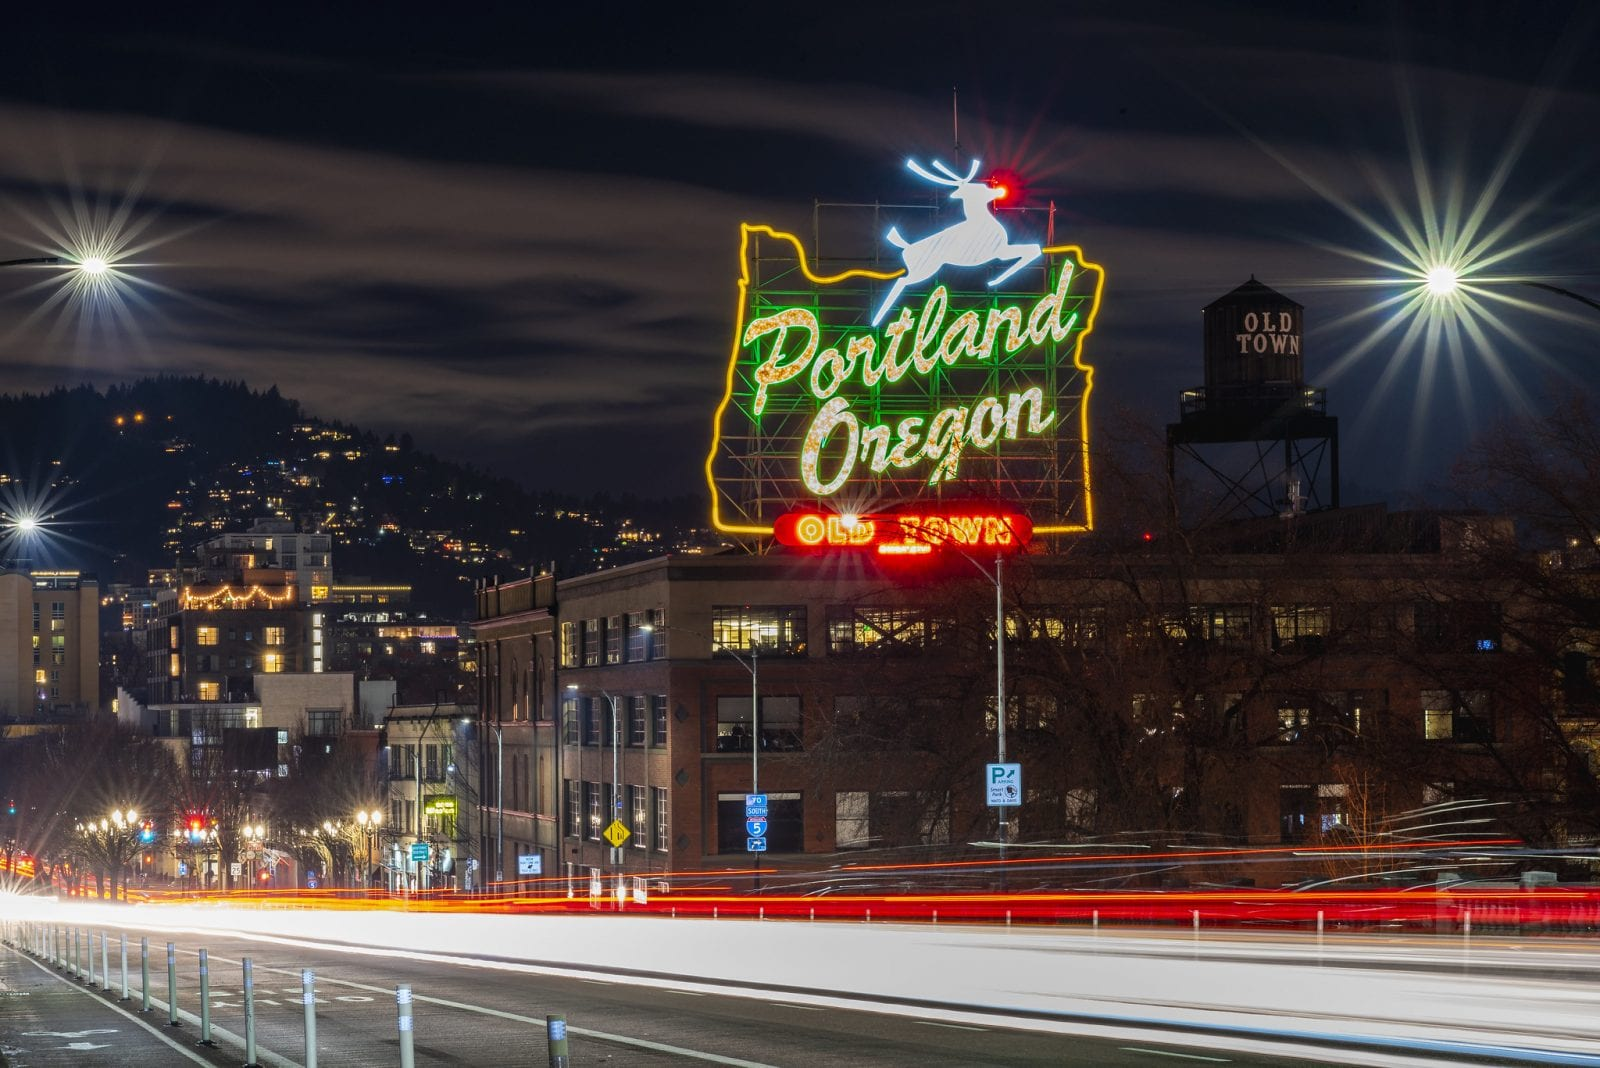 Portland Old Town at night